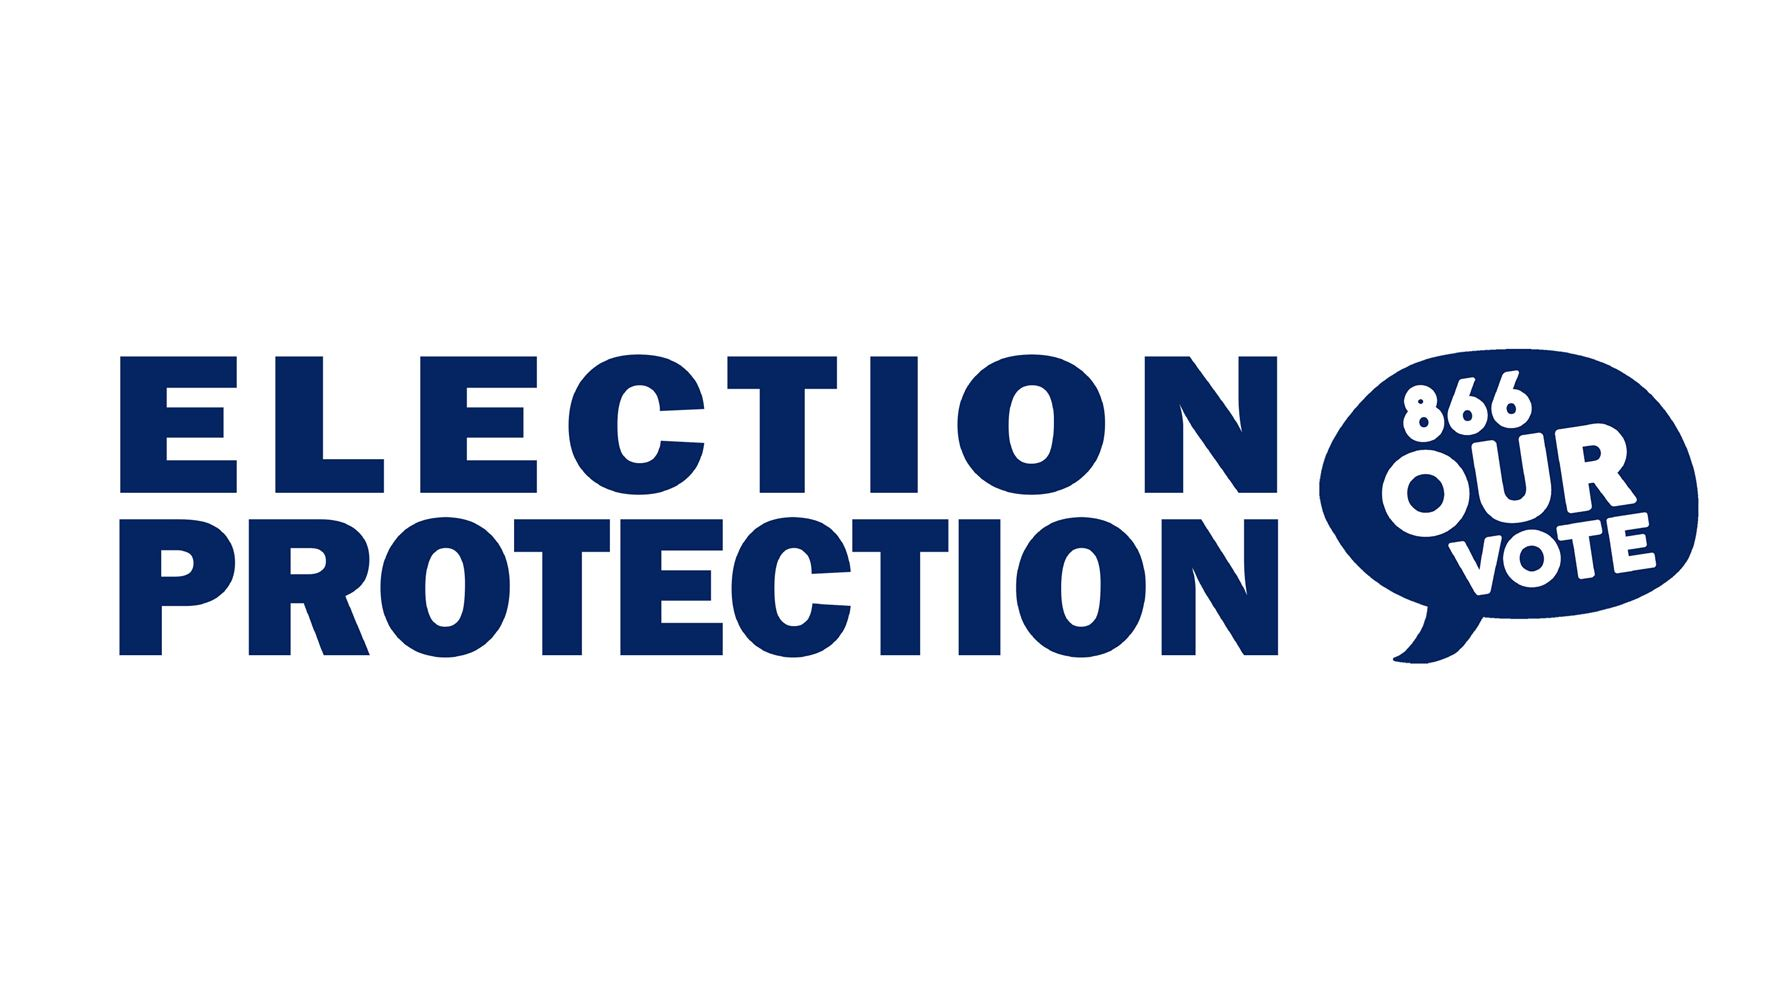 Election Protection 866-our-vote logo